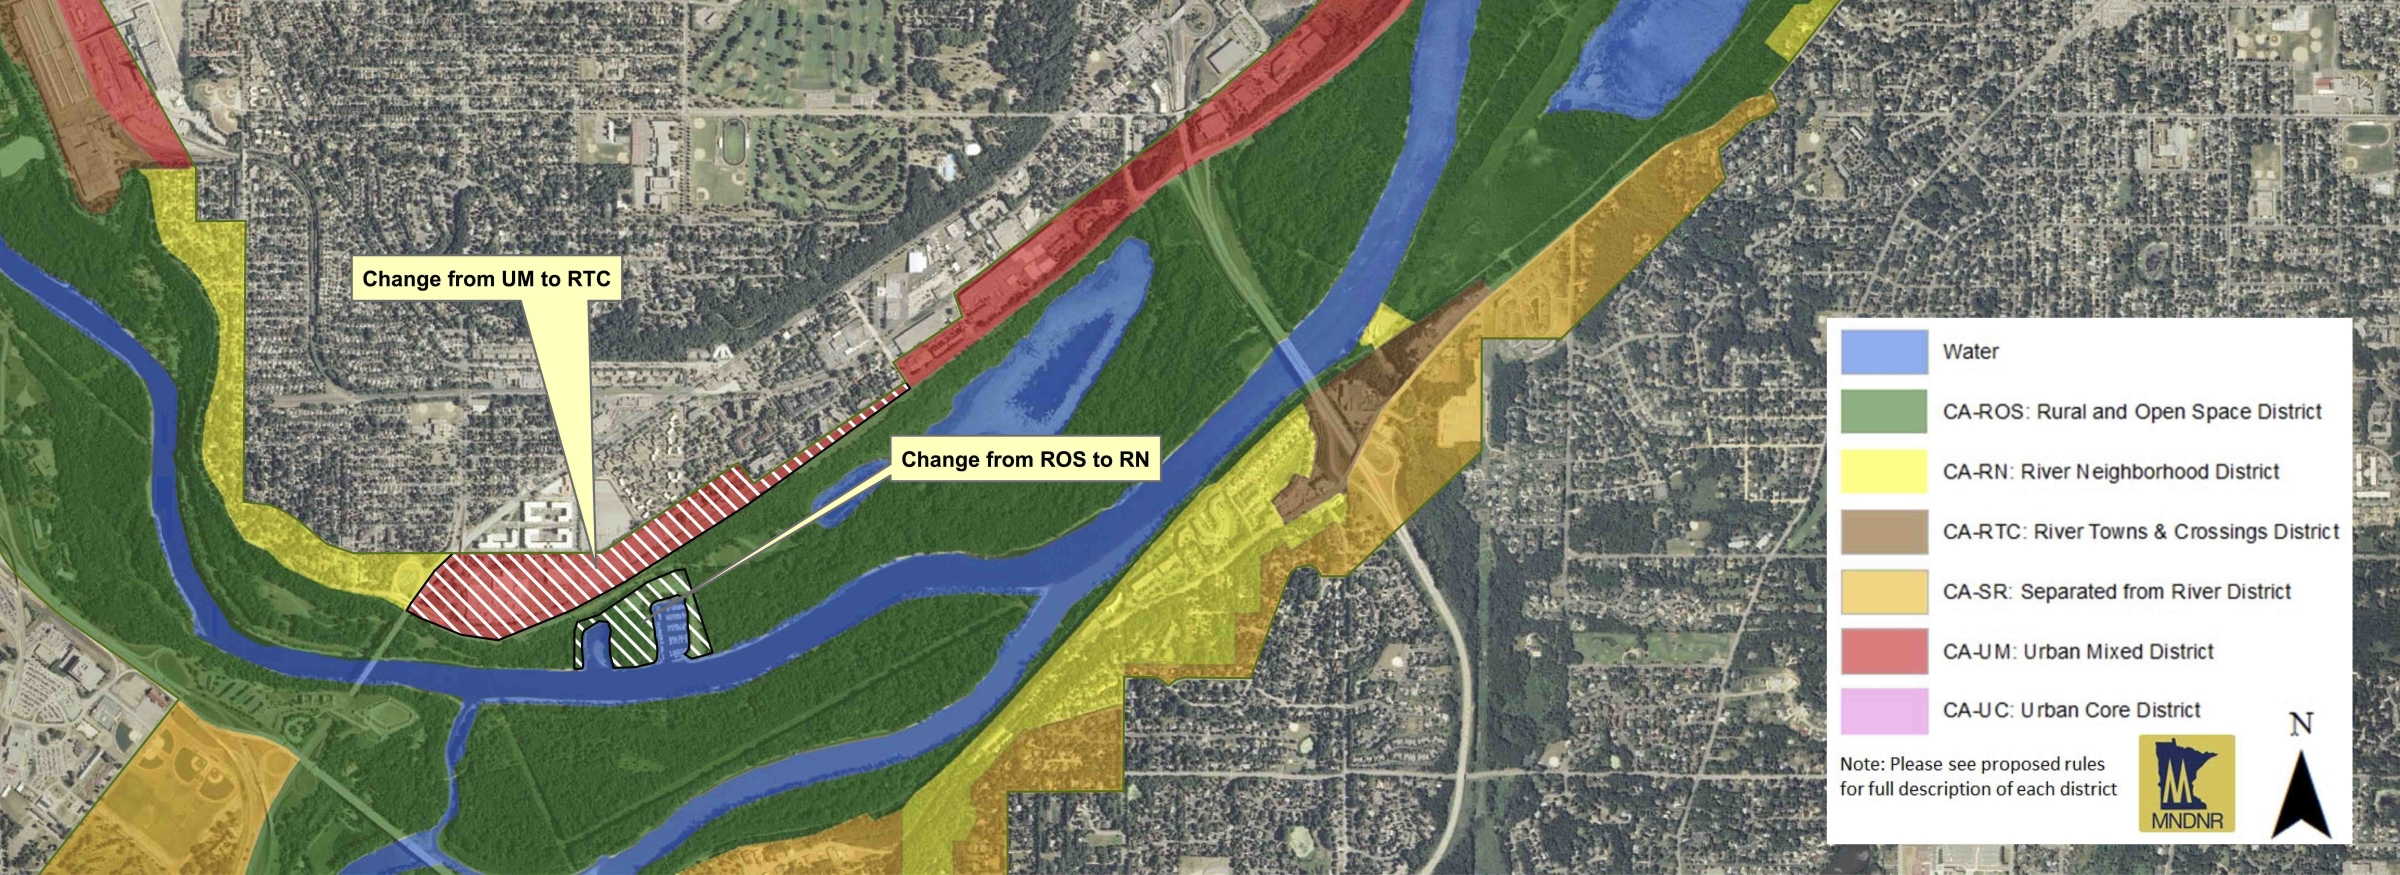 New land-use districts better reflect today's riverfront communities.